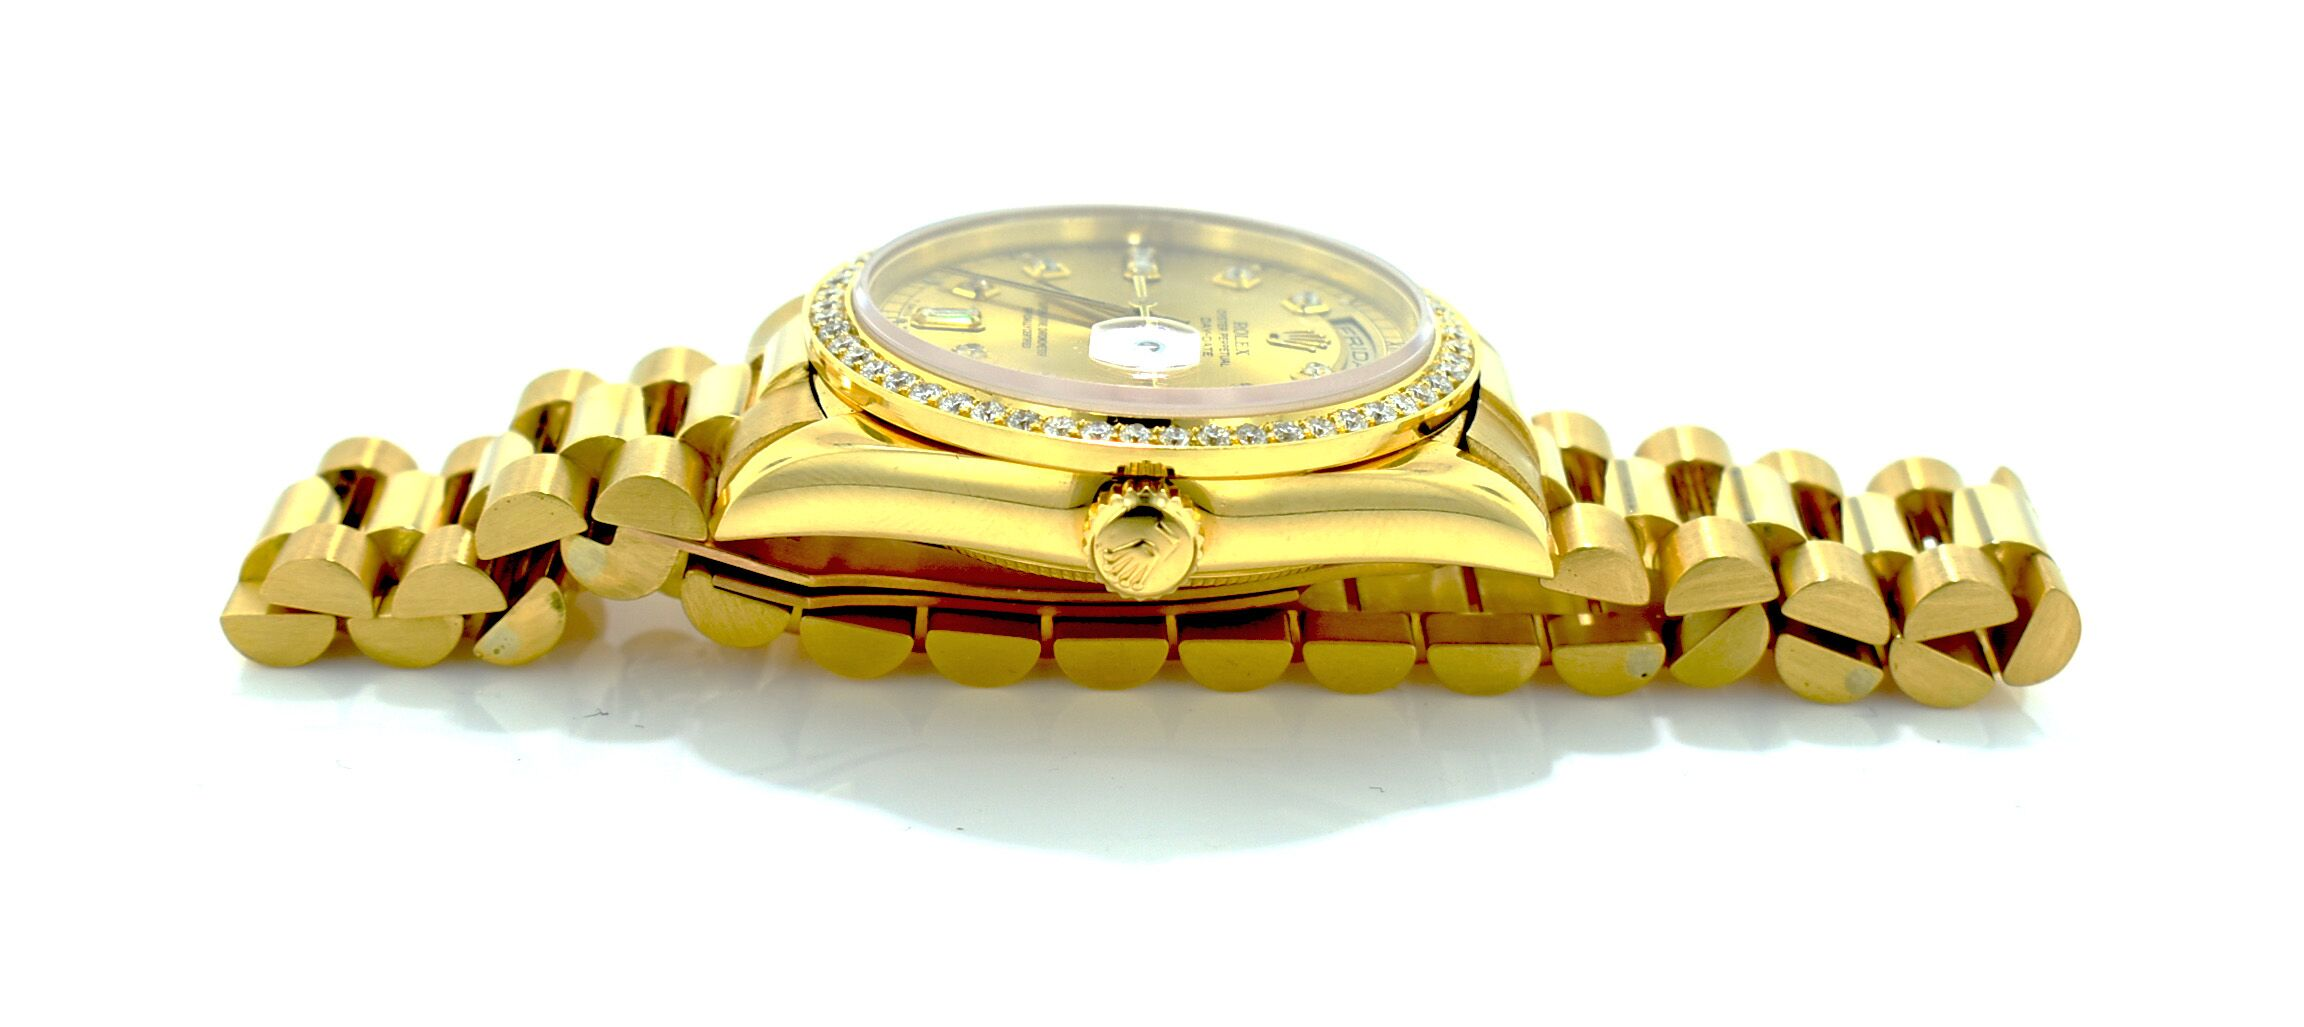 gold rolex watch buyers atlanta barrons fine jewlery